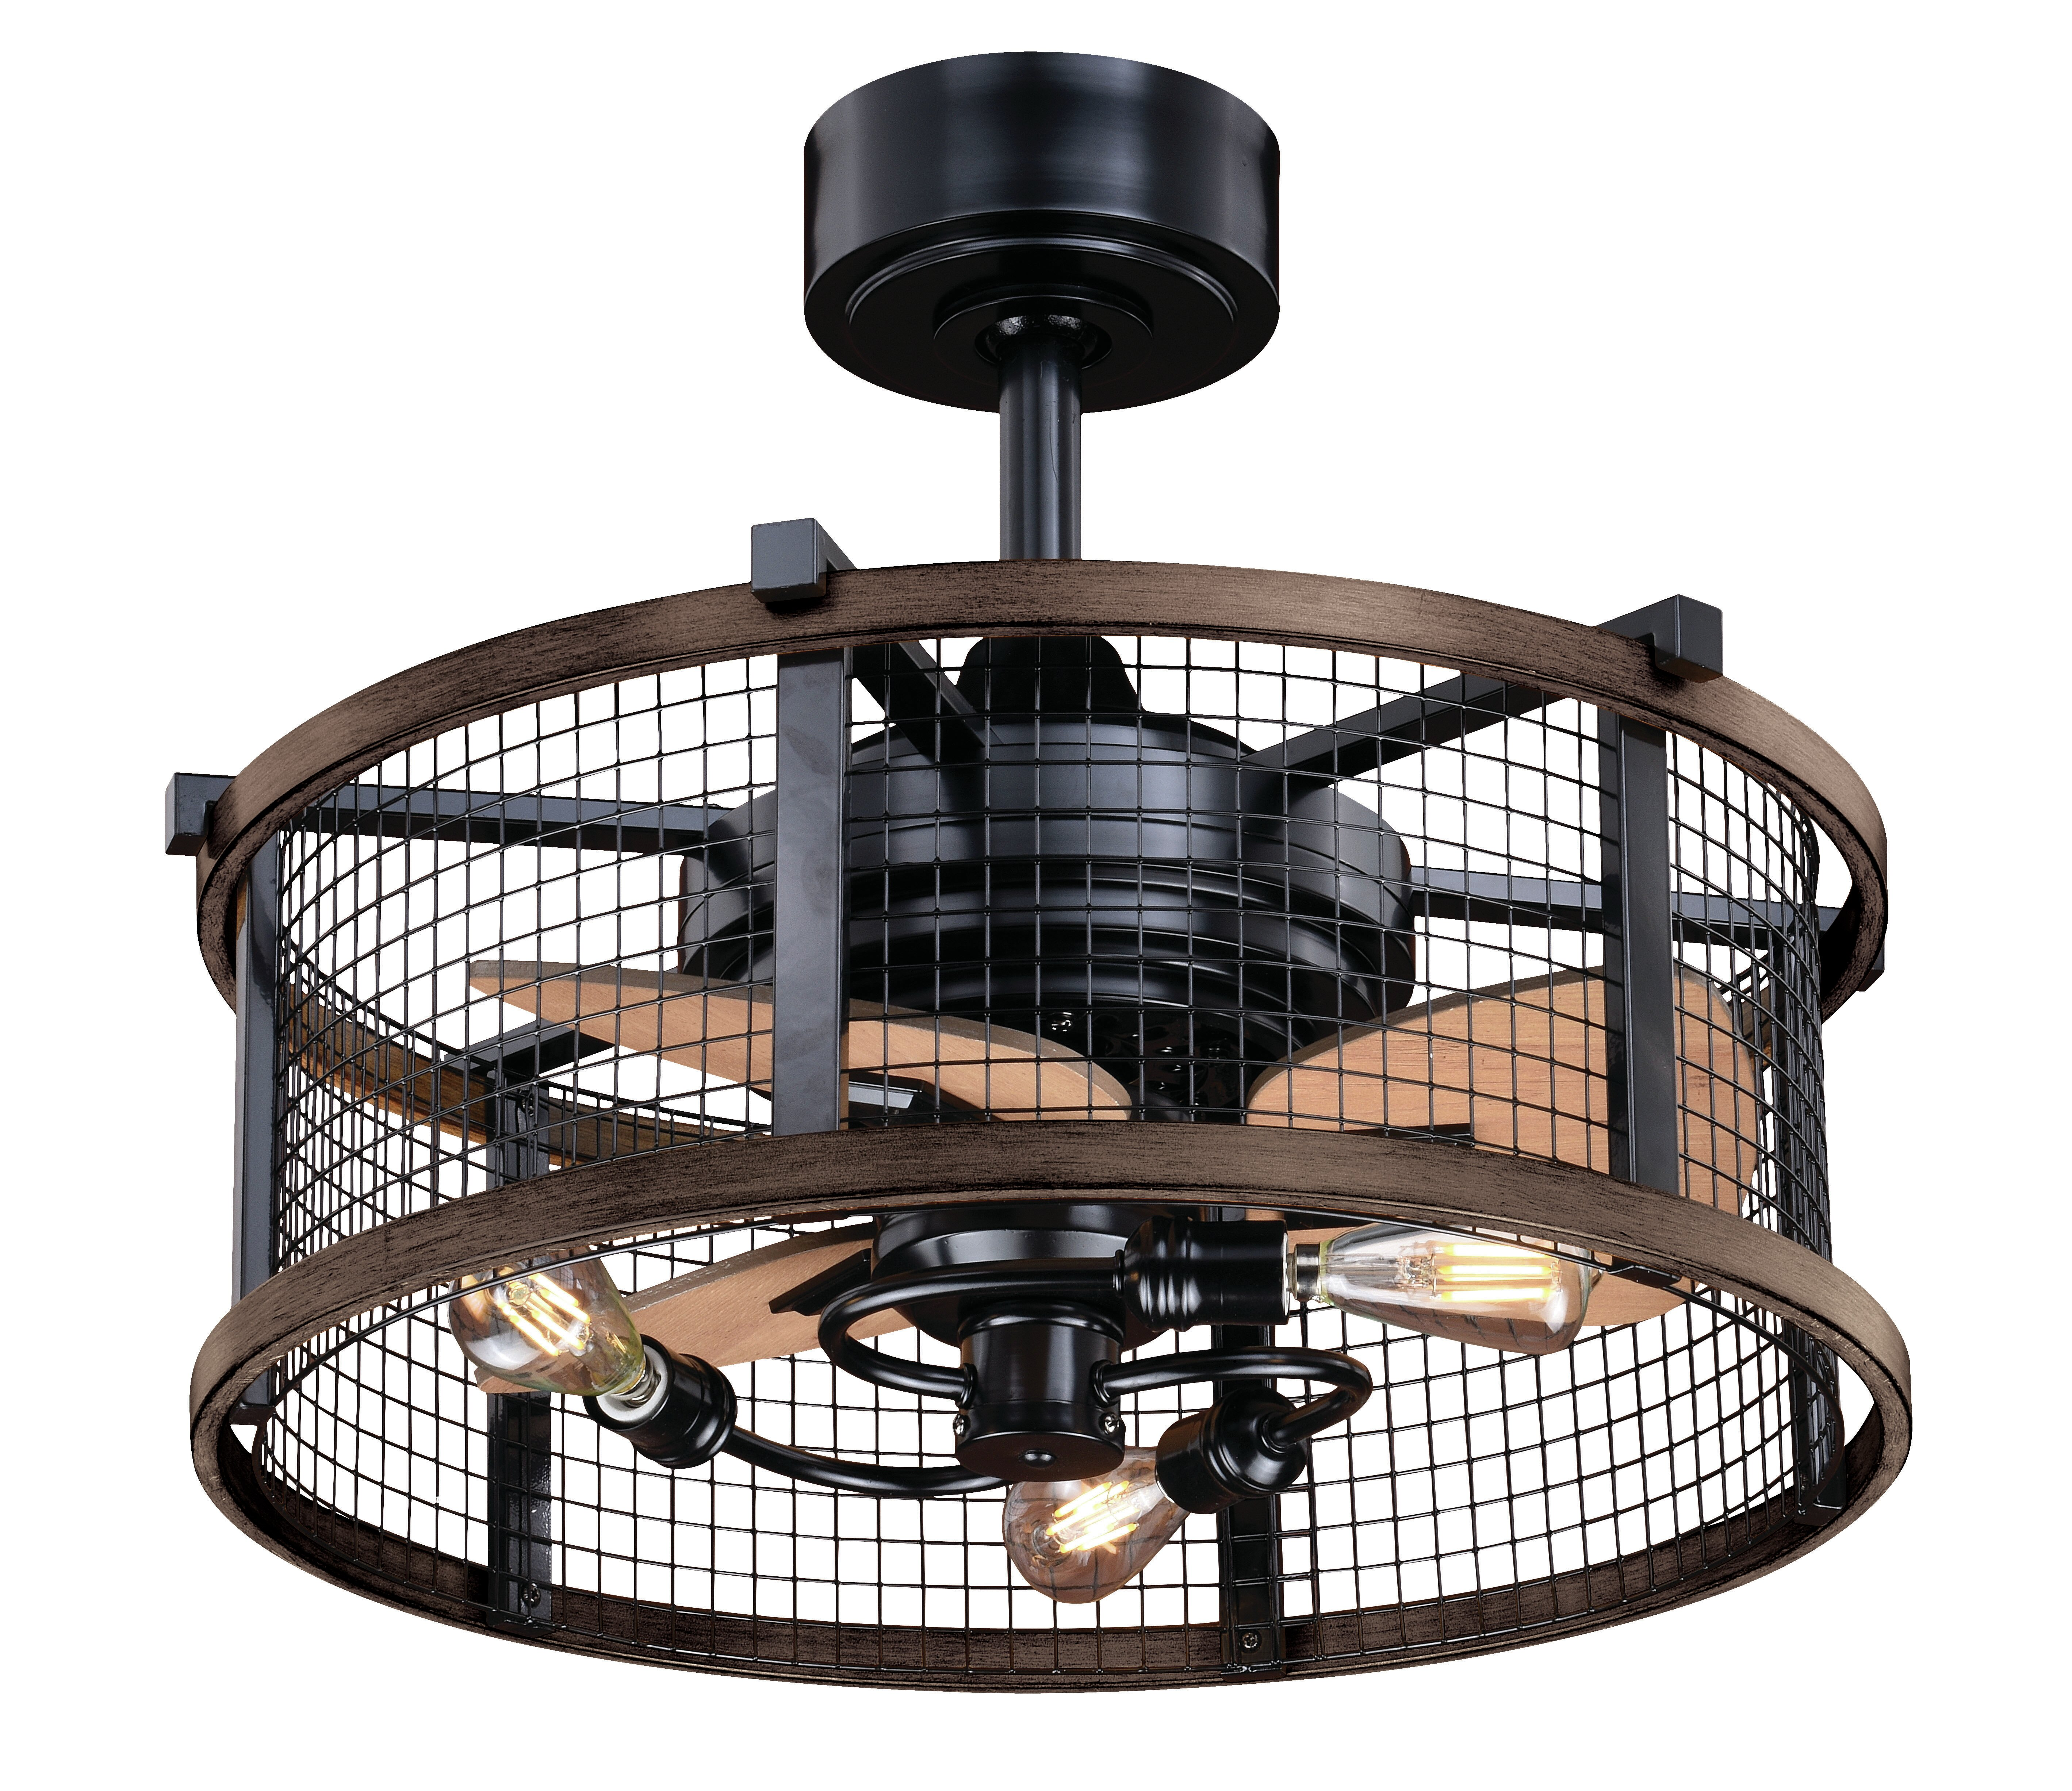 Williston Forge 21 Touchet 3 Blade Caged Ceiling Fan With Remote Control And Light Kit Included Reviews Wayfair